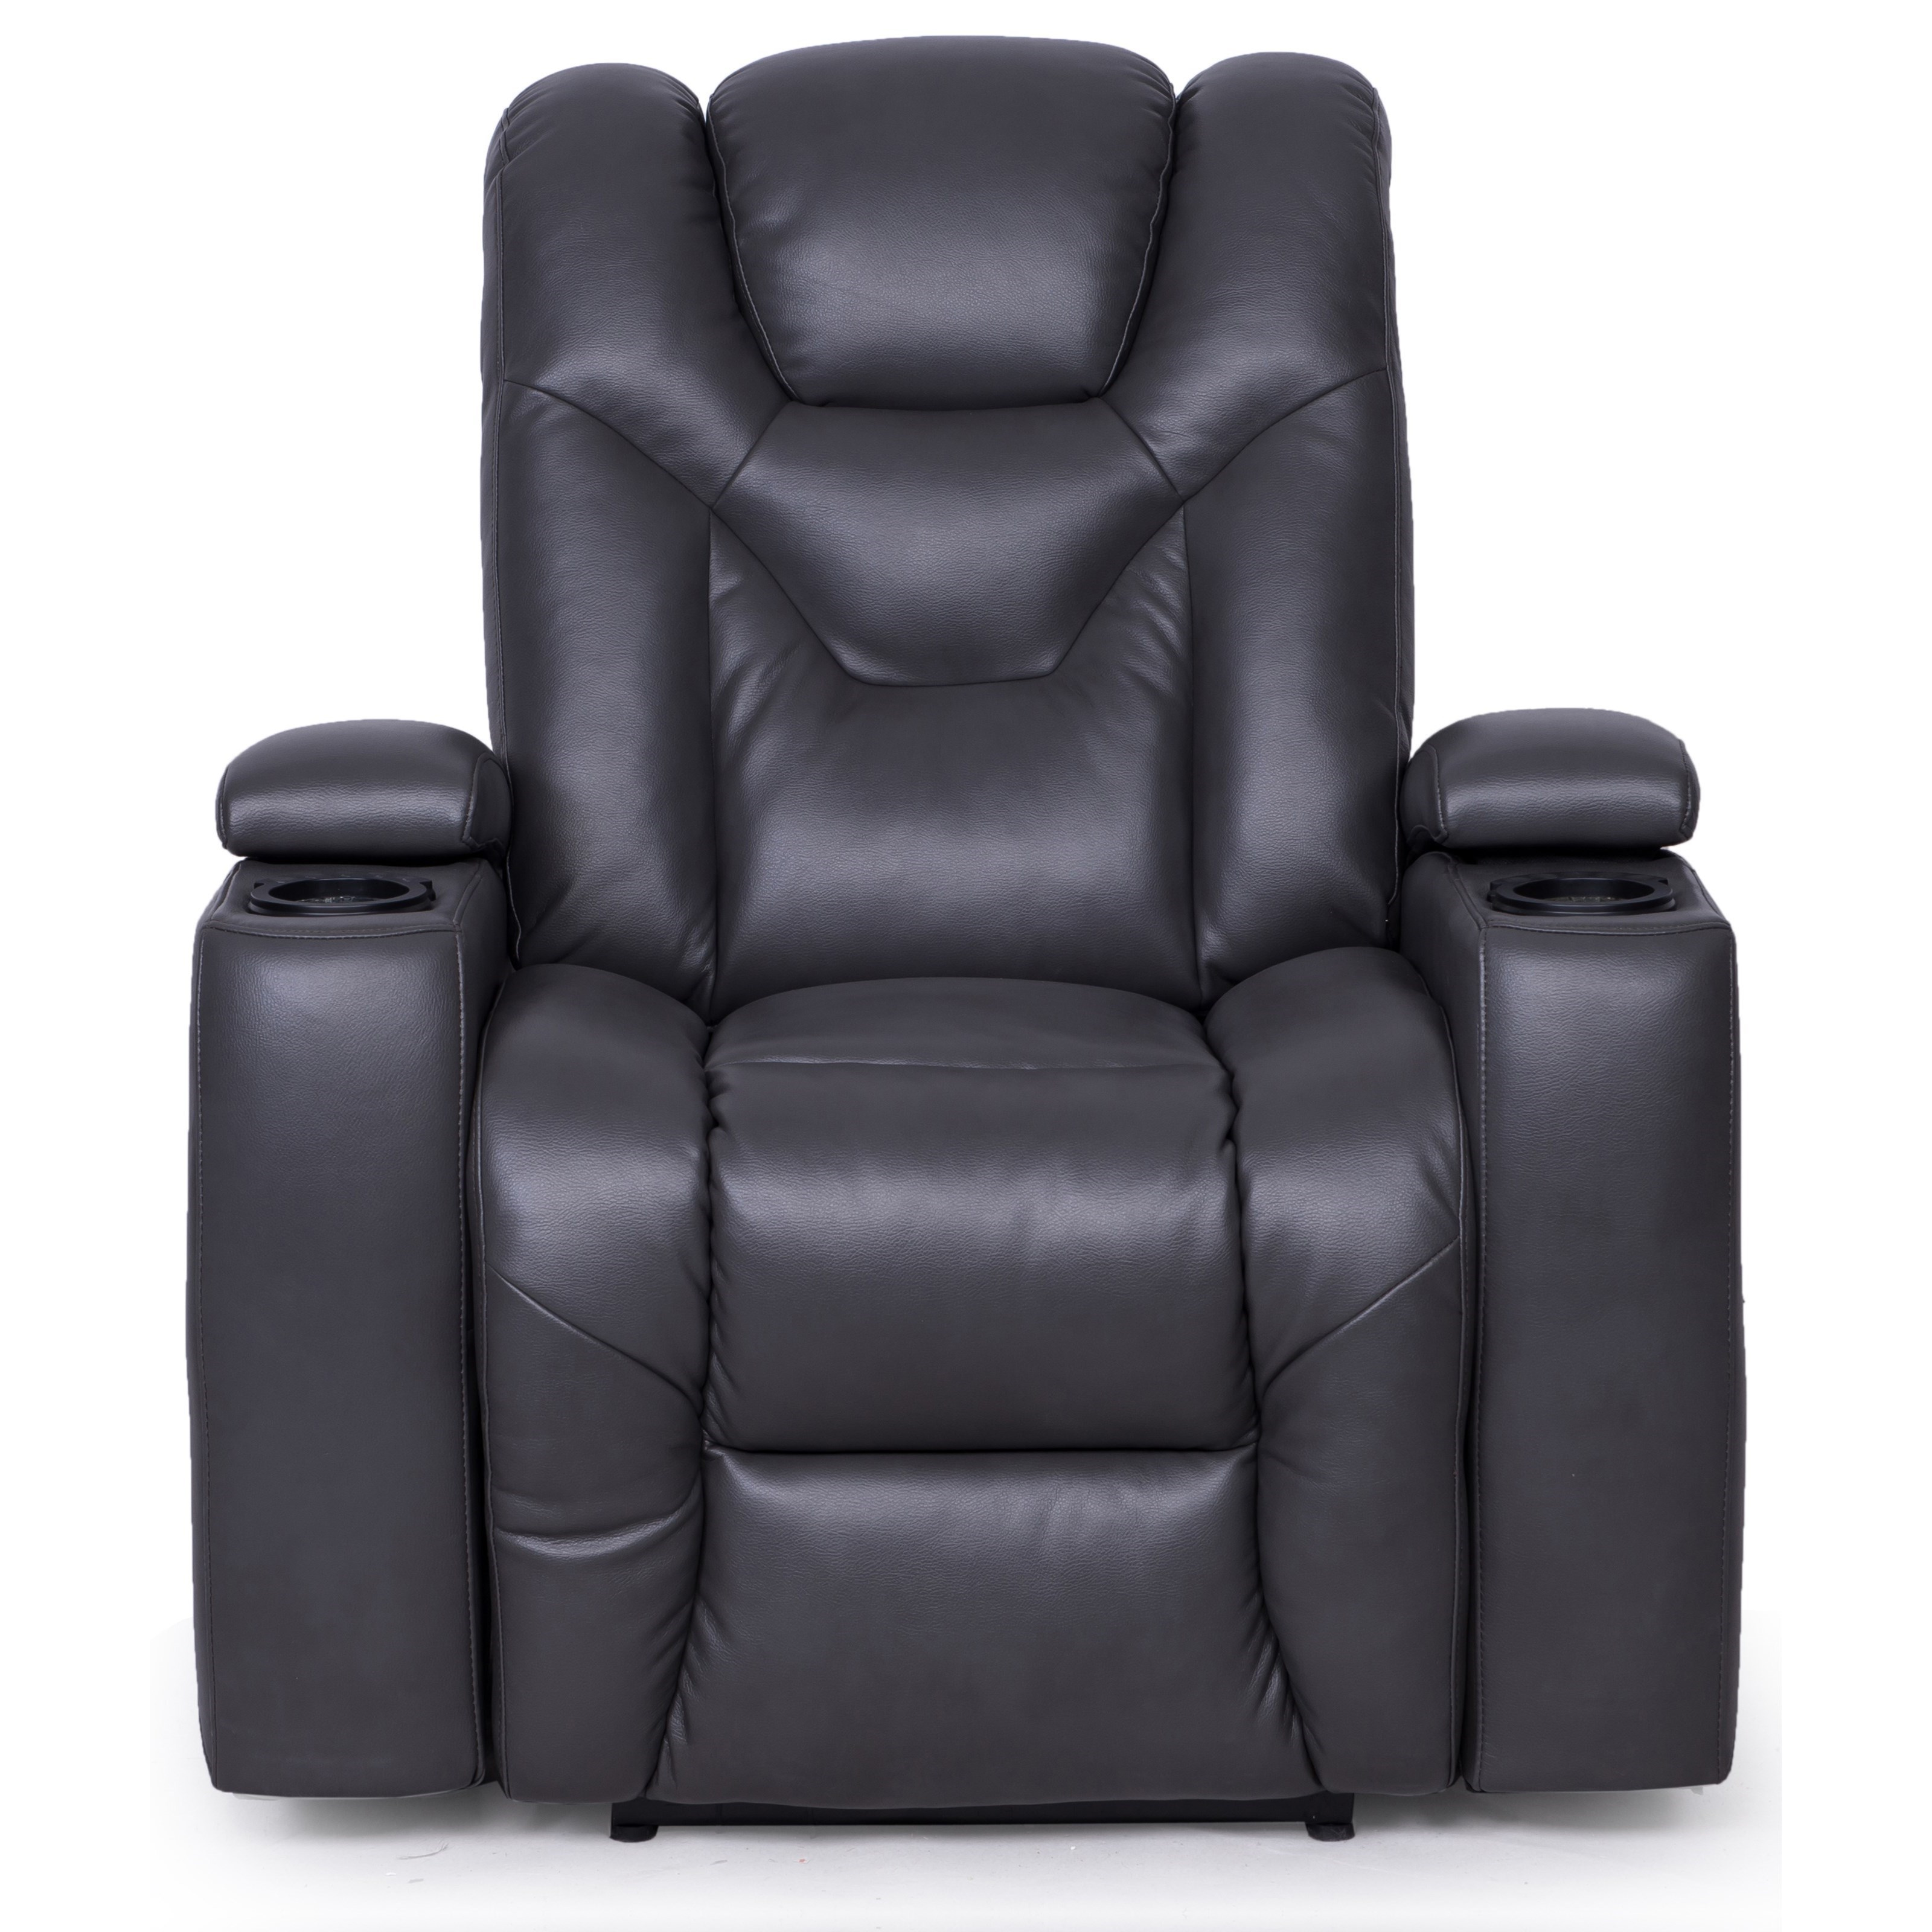 Synergy Home Furnishings 377 Power Recliner with Hidden Storage Compartments - Zaku0027s Fine Furniture - Three Way Recliners  sc 1 st  Zaku0027s Fine Furniture & Synergy Home Furnishings 377 Power Recliner with Hidden Storage ... islam-shia.org